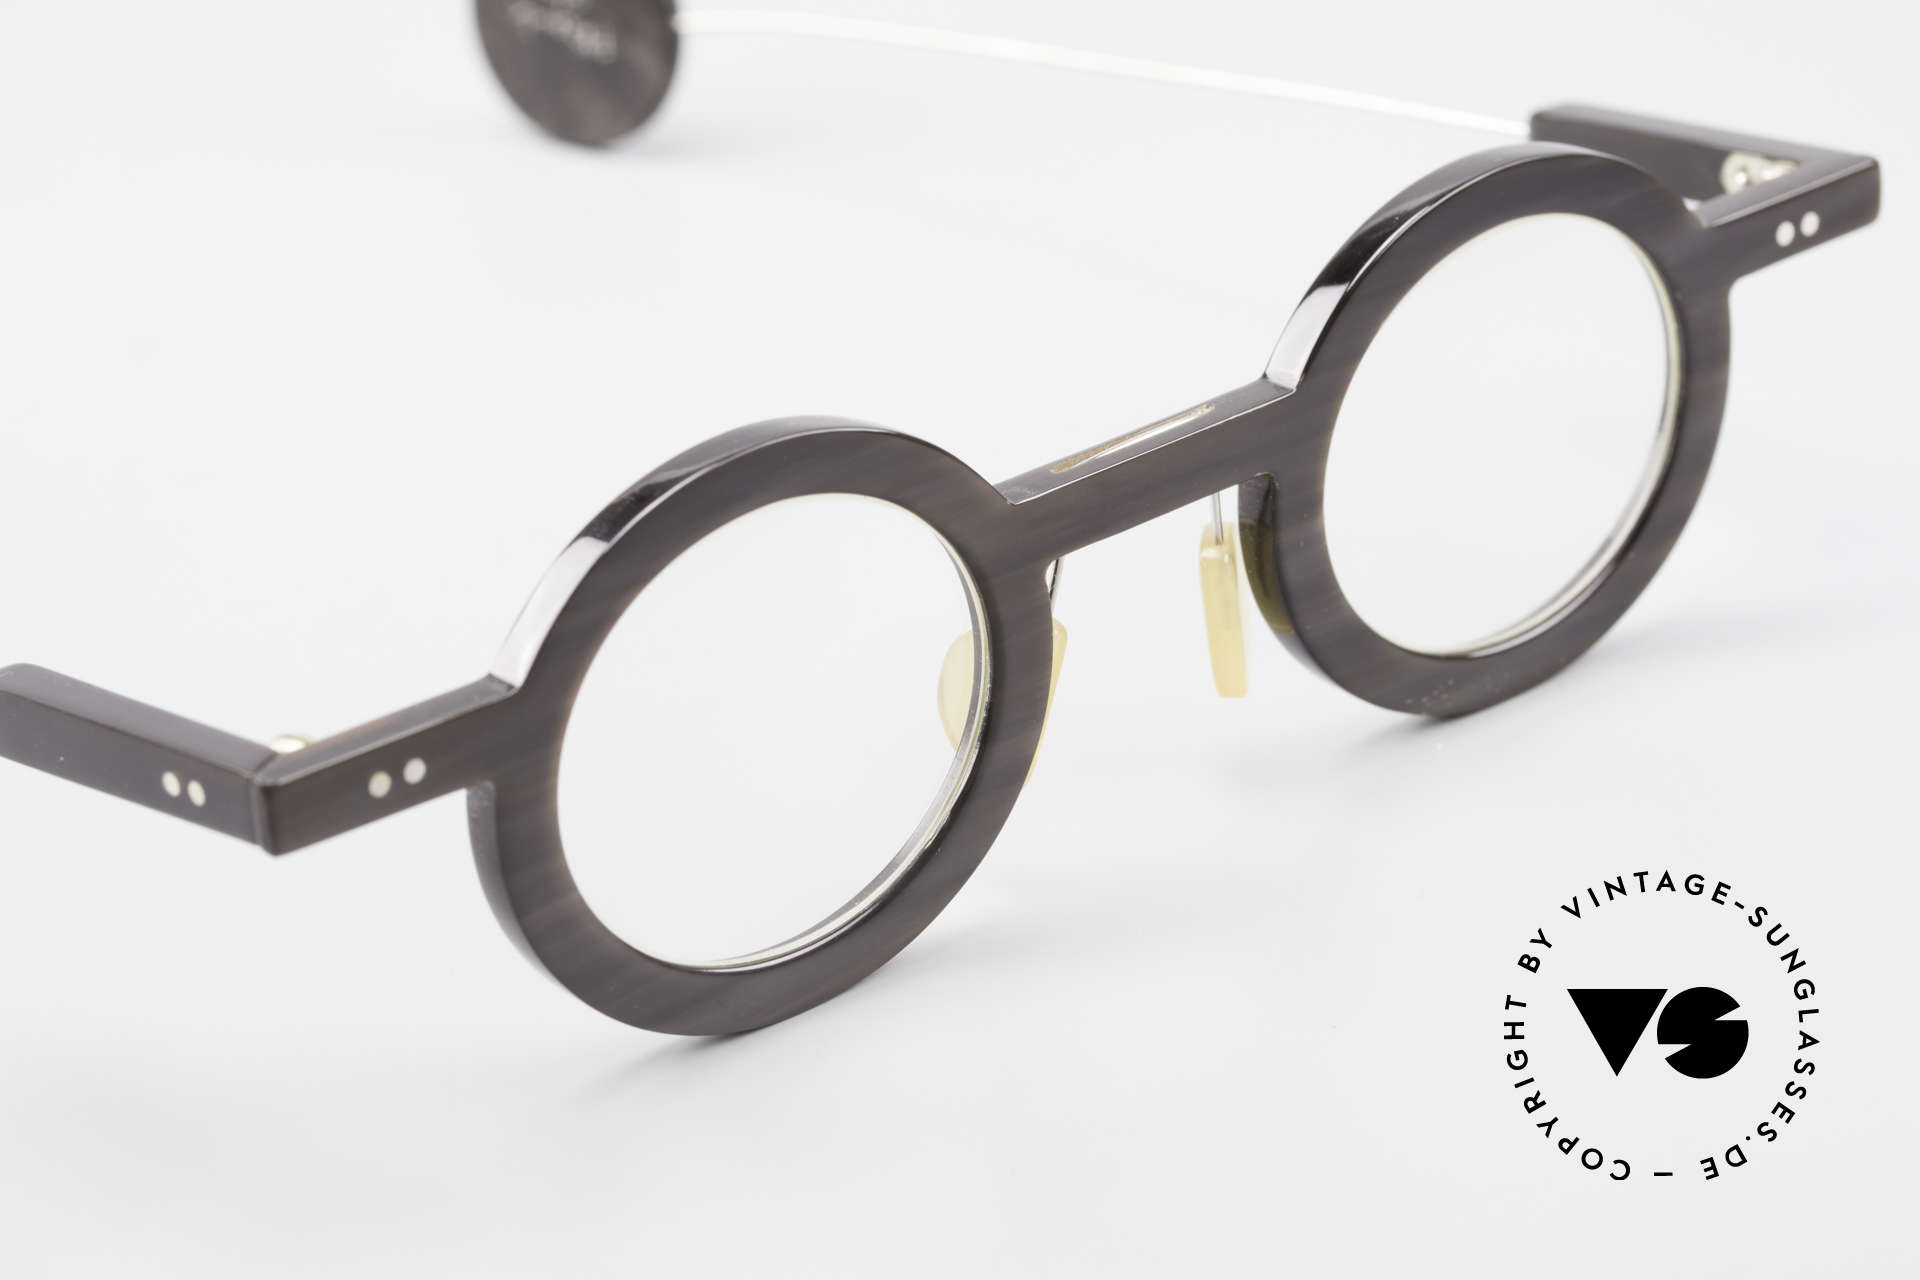 P. Klenk Rugby 014 Genuine Horn Glasses Round, unworn (like all our vintage genuine buffalo horn frames), Made for Men